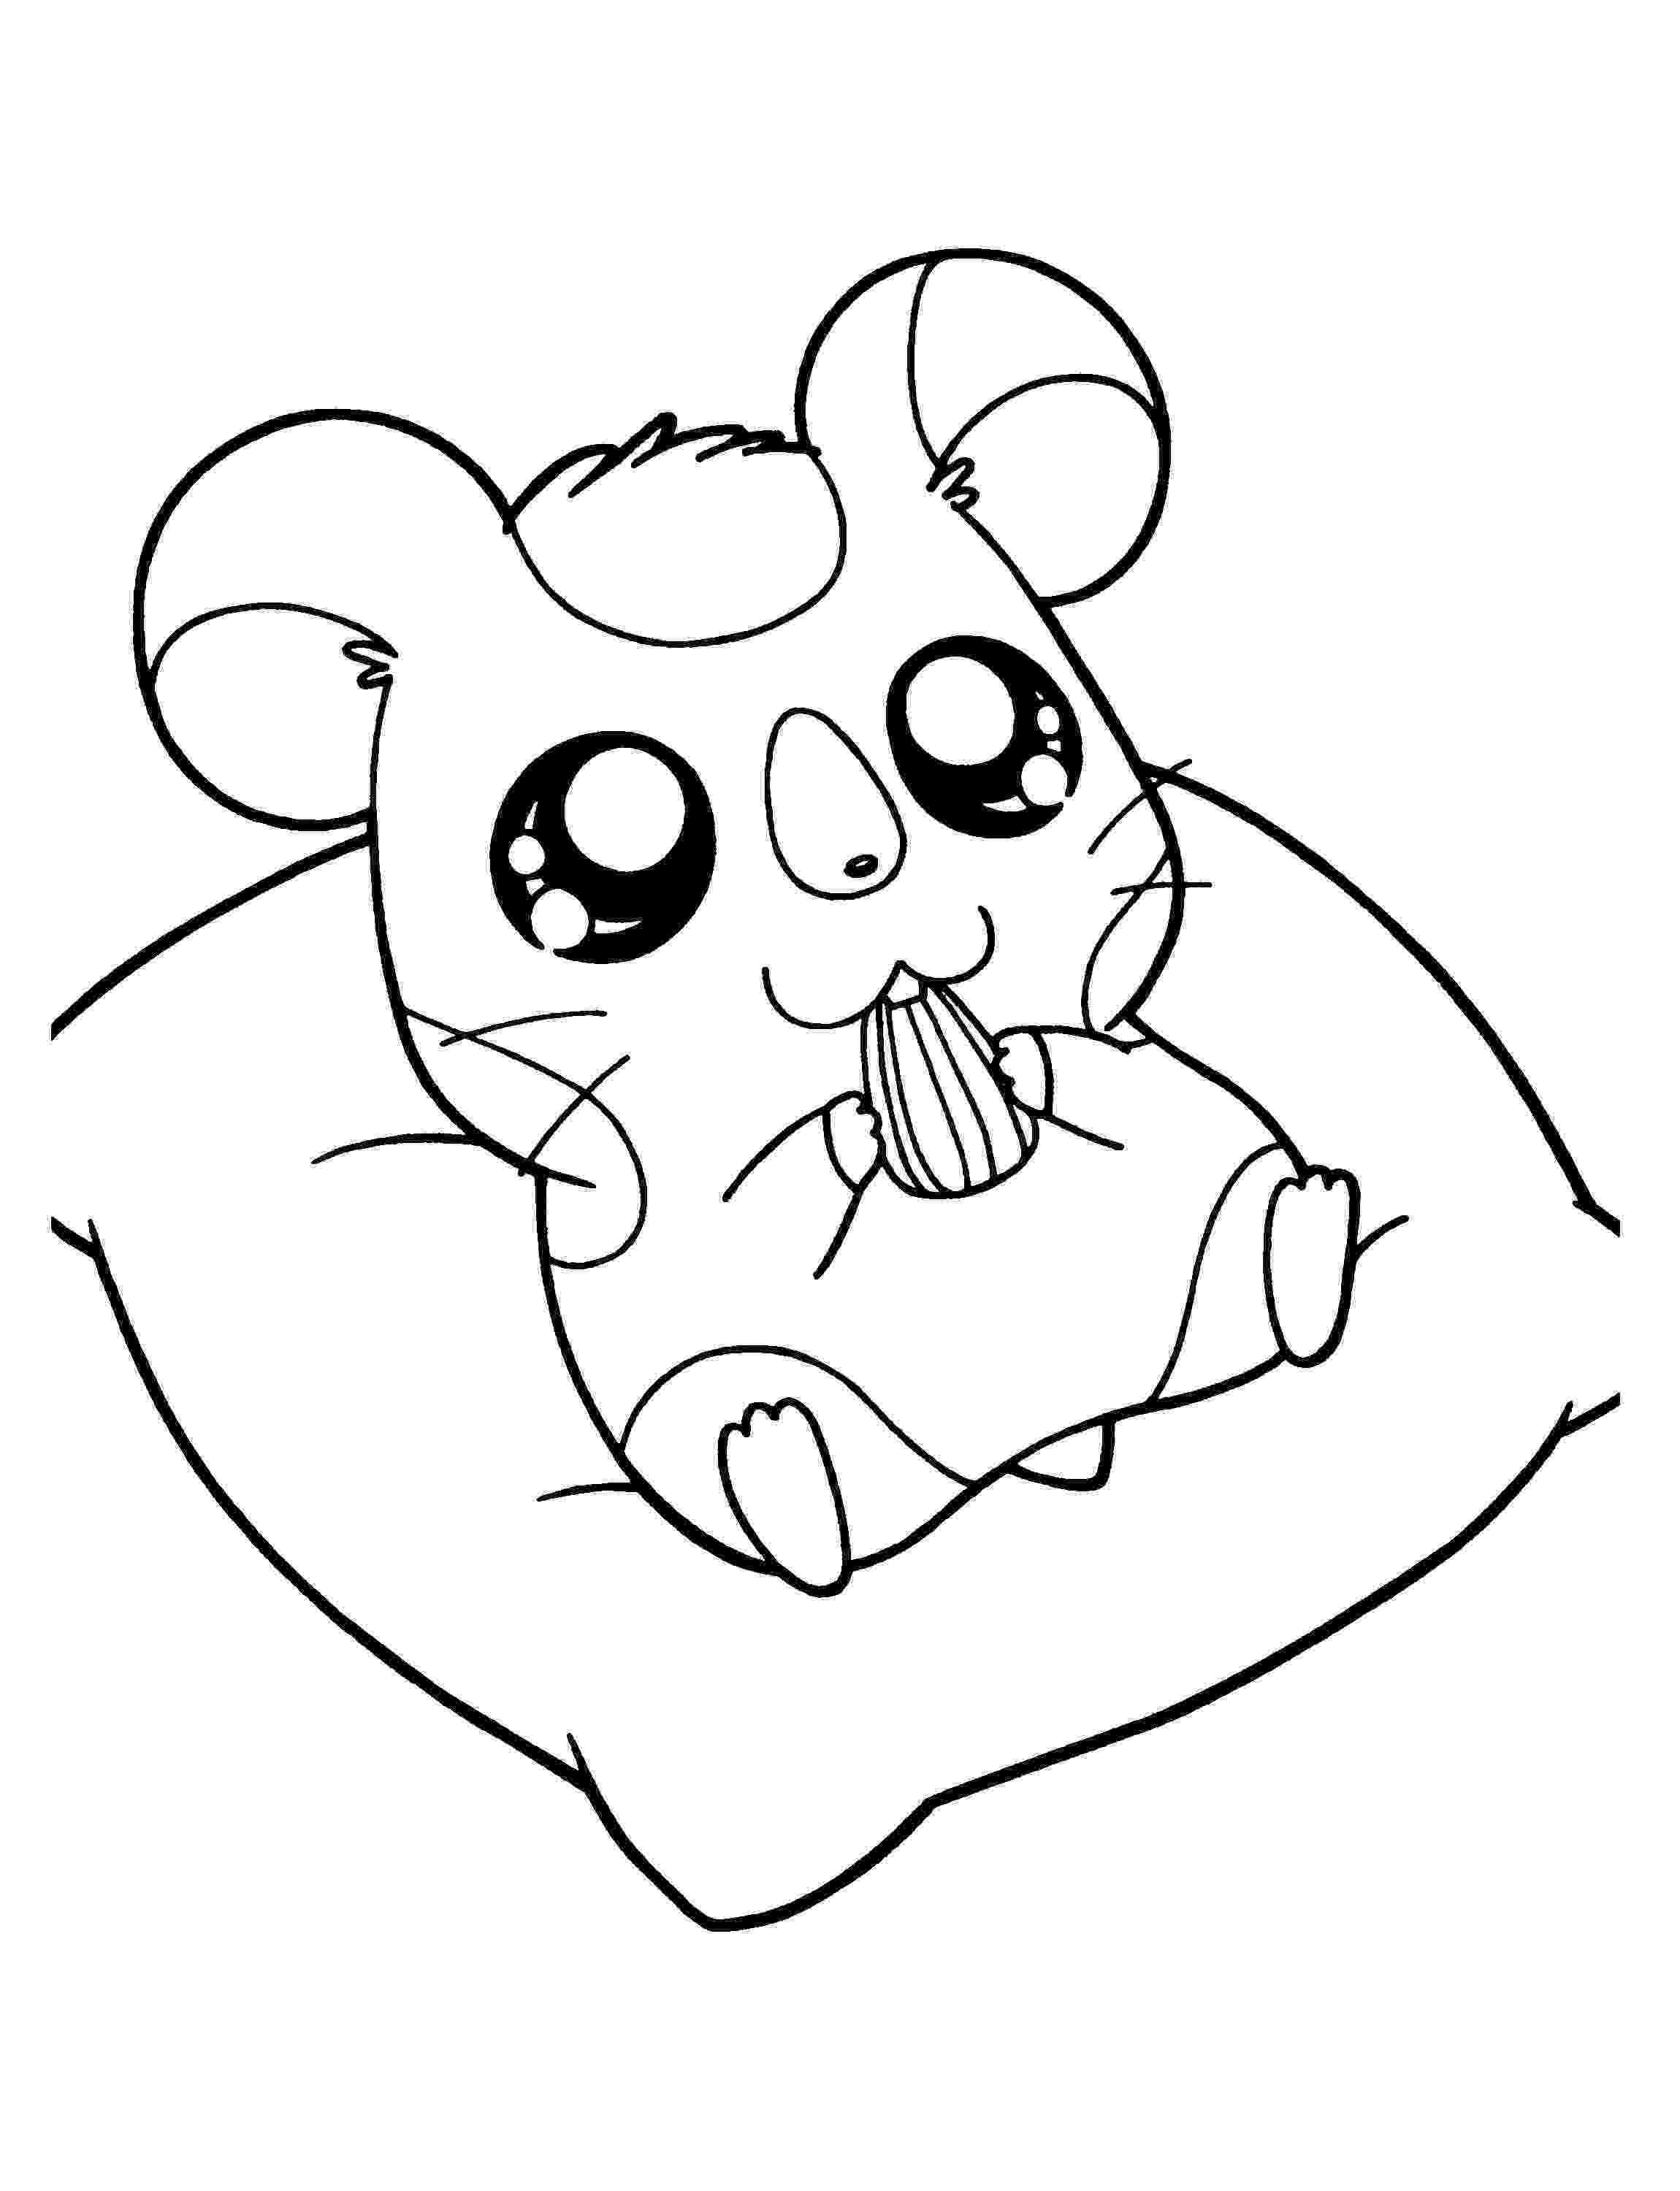 hamster coloring pages to print hamster coloring pages best coloring pages for kids print hamster pages to coloring